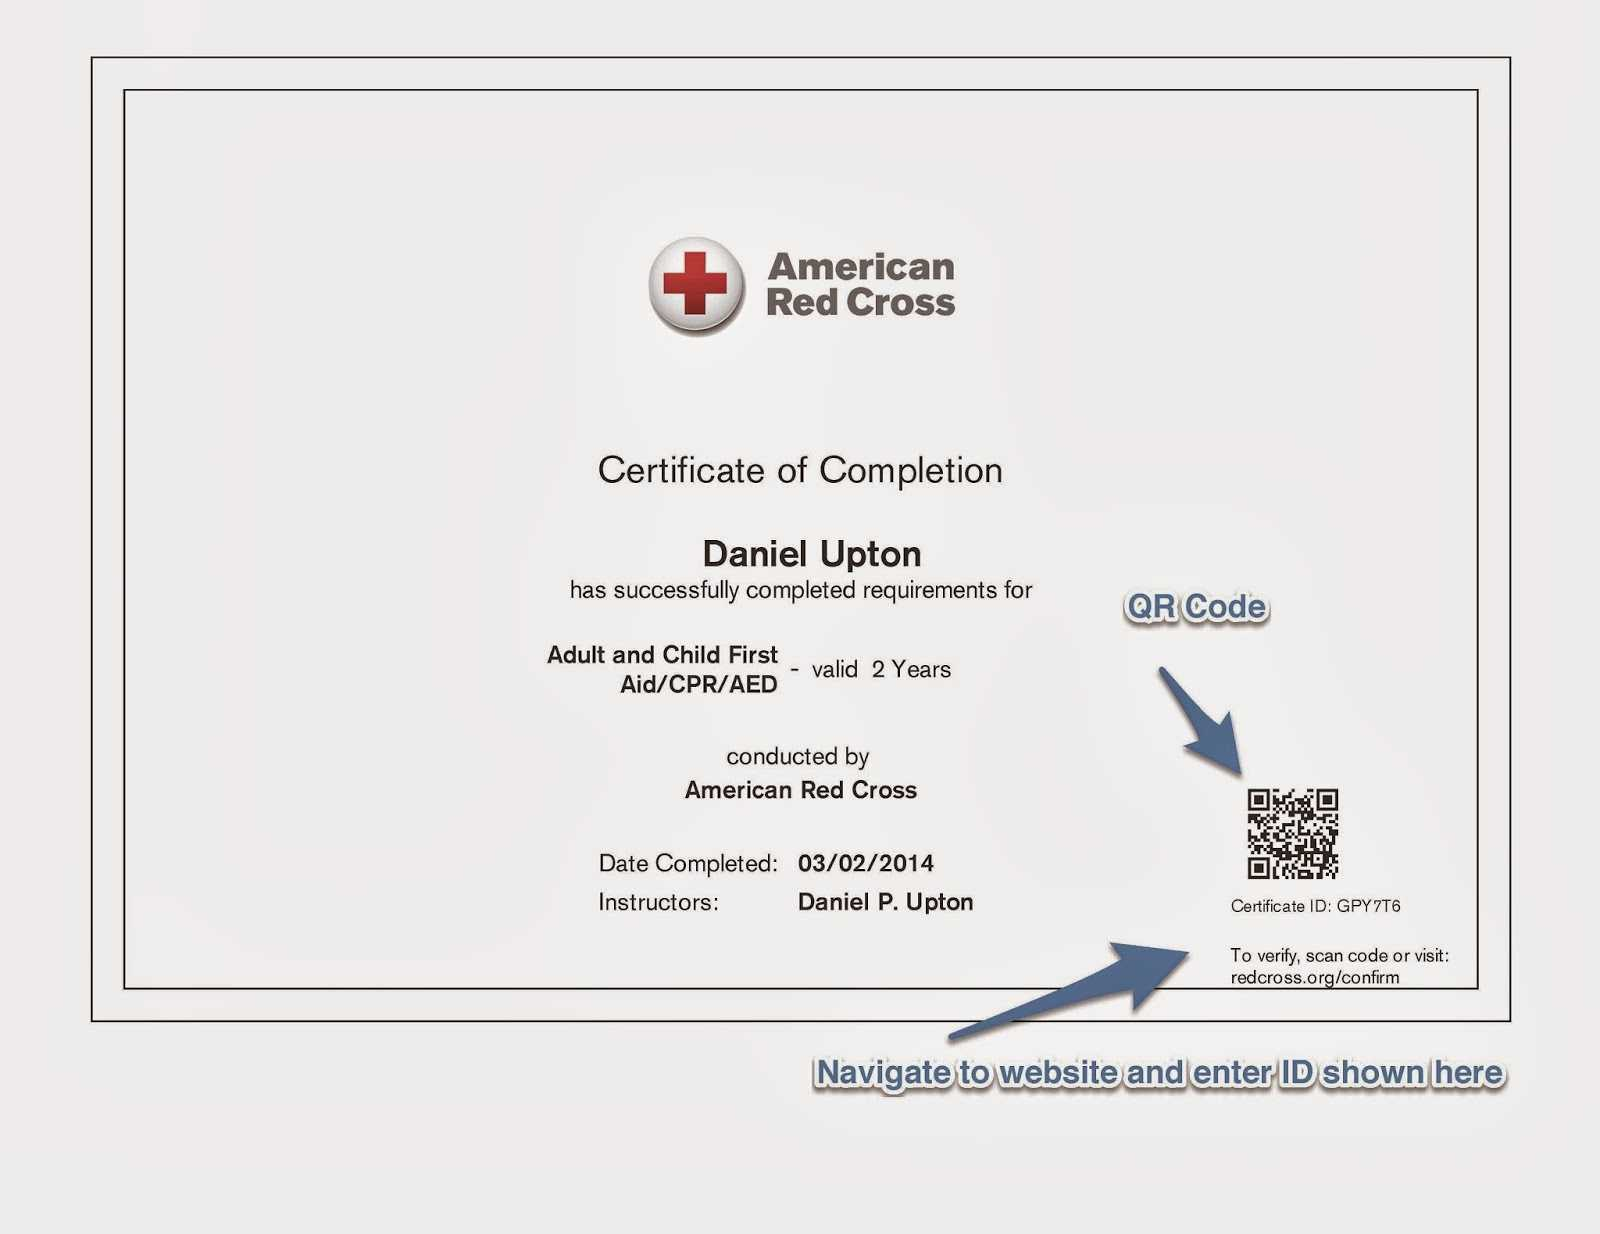 American Red Cross Cpr Card Template ] - Aha Training Center Regarding Cpr Card Template